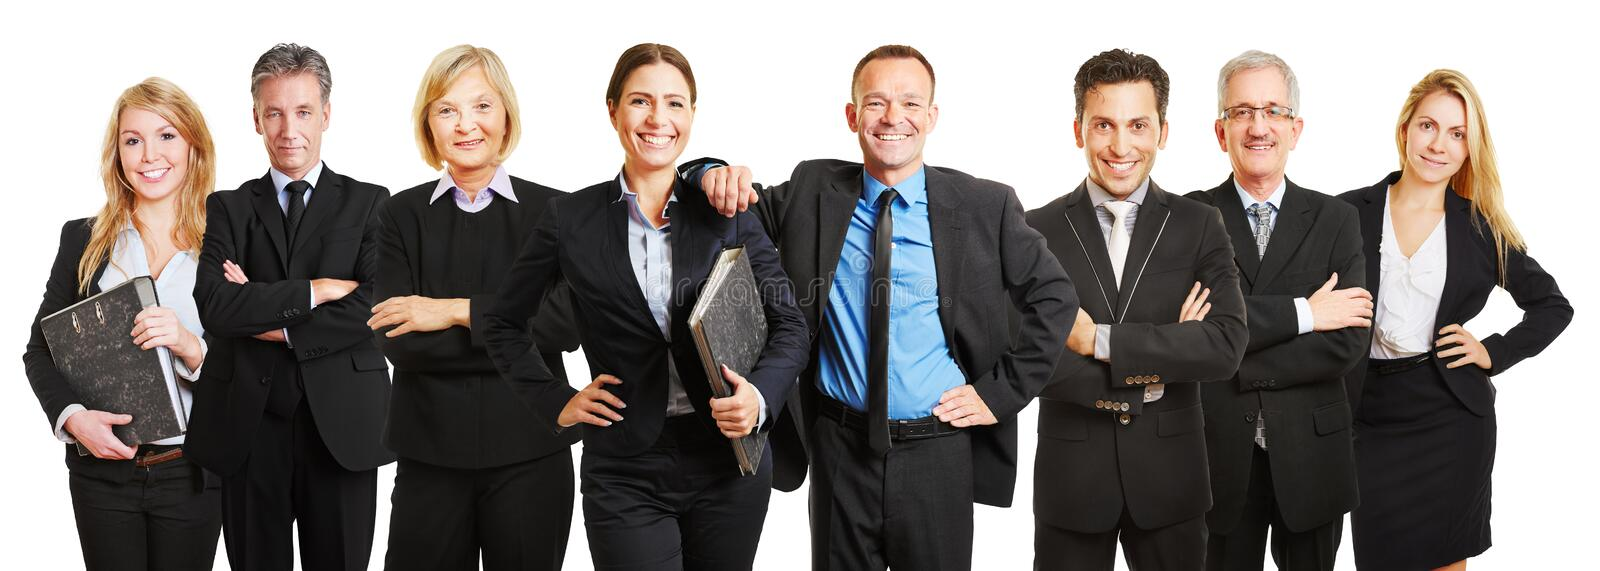 Professional business lawyer team royalty free stock photos